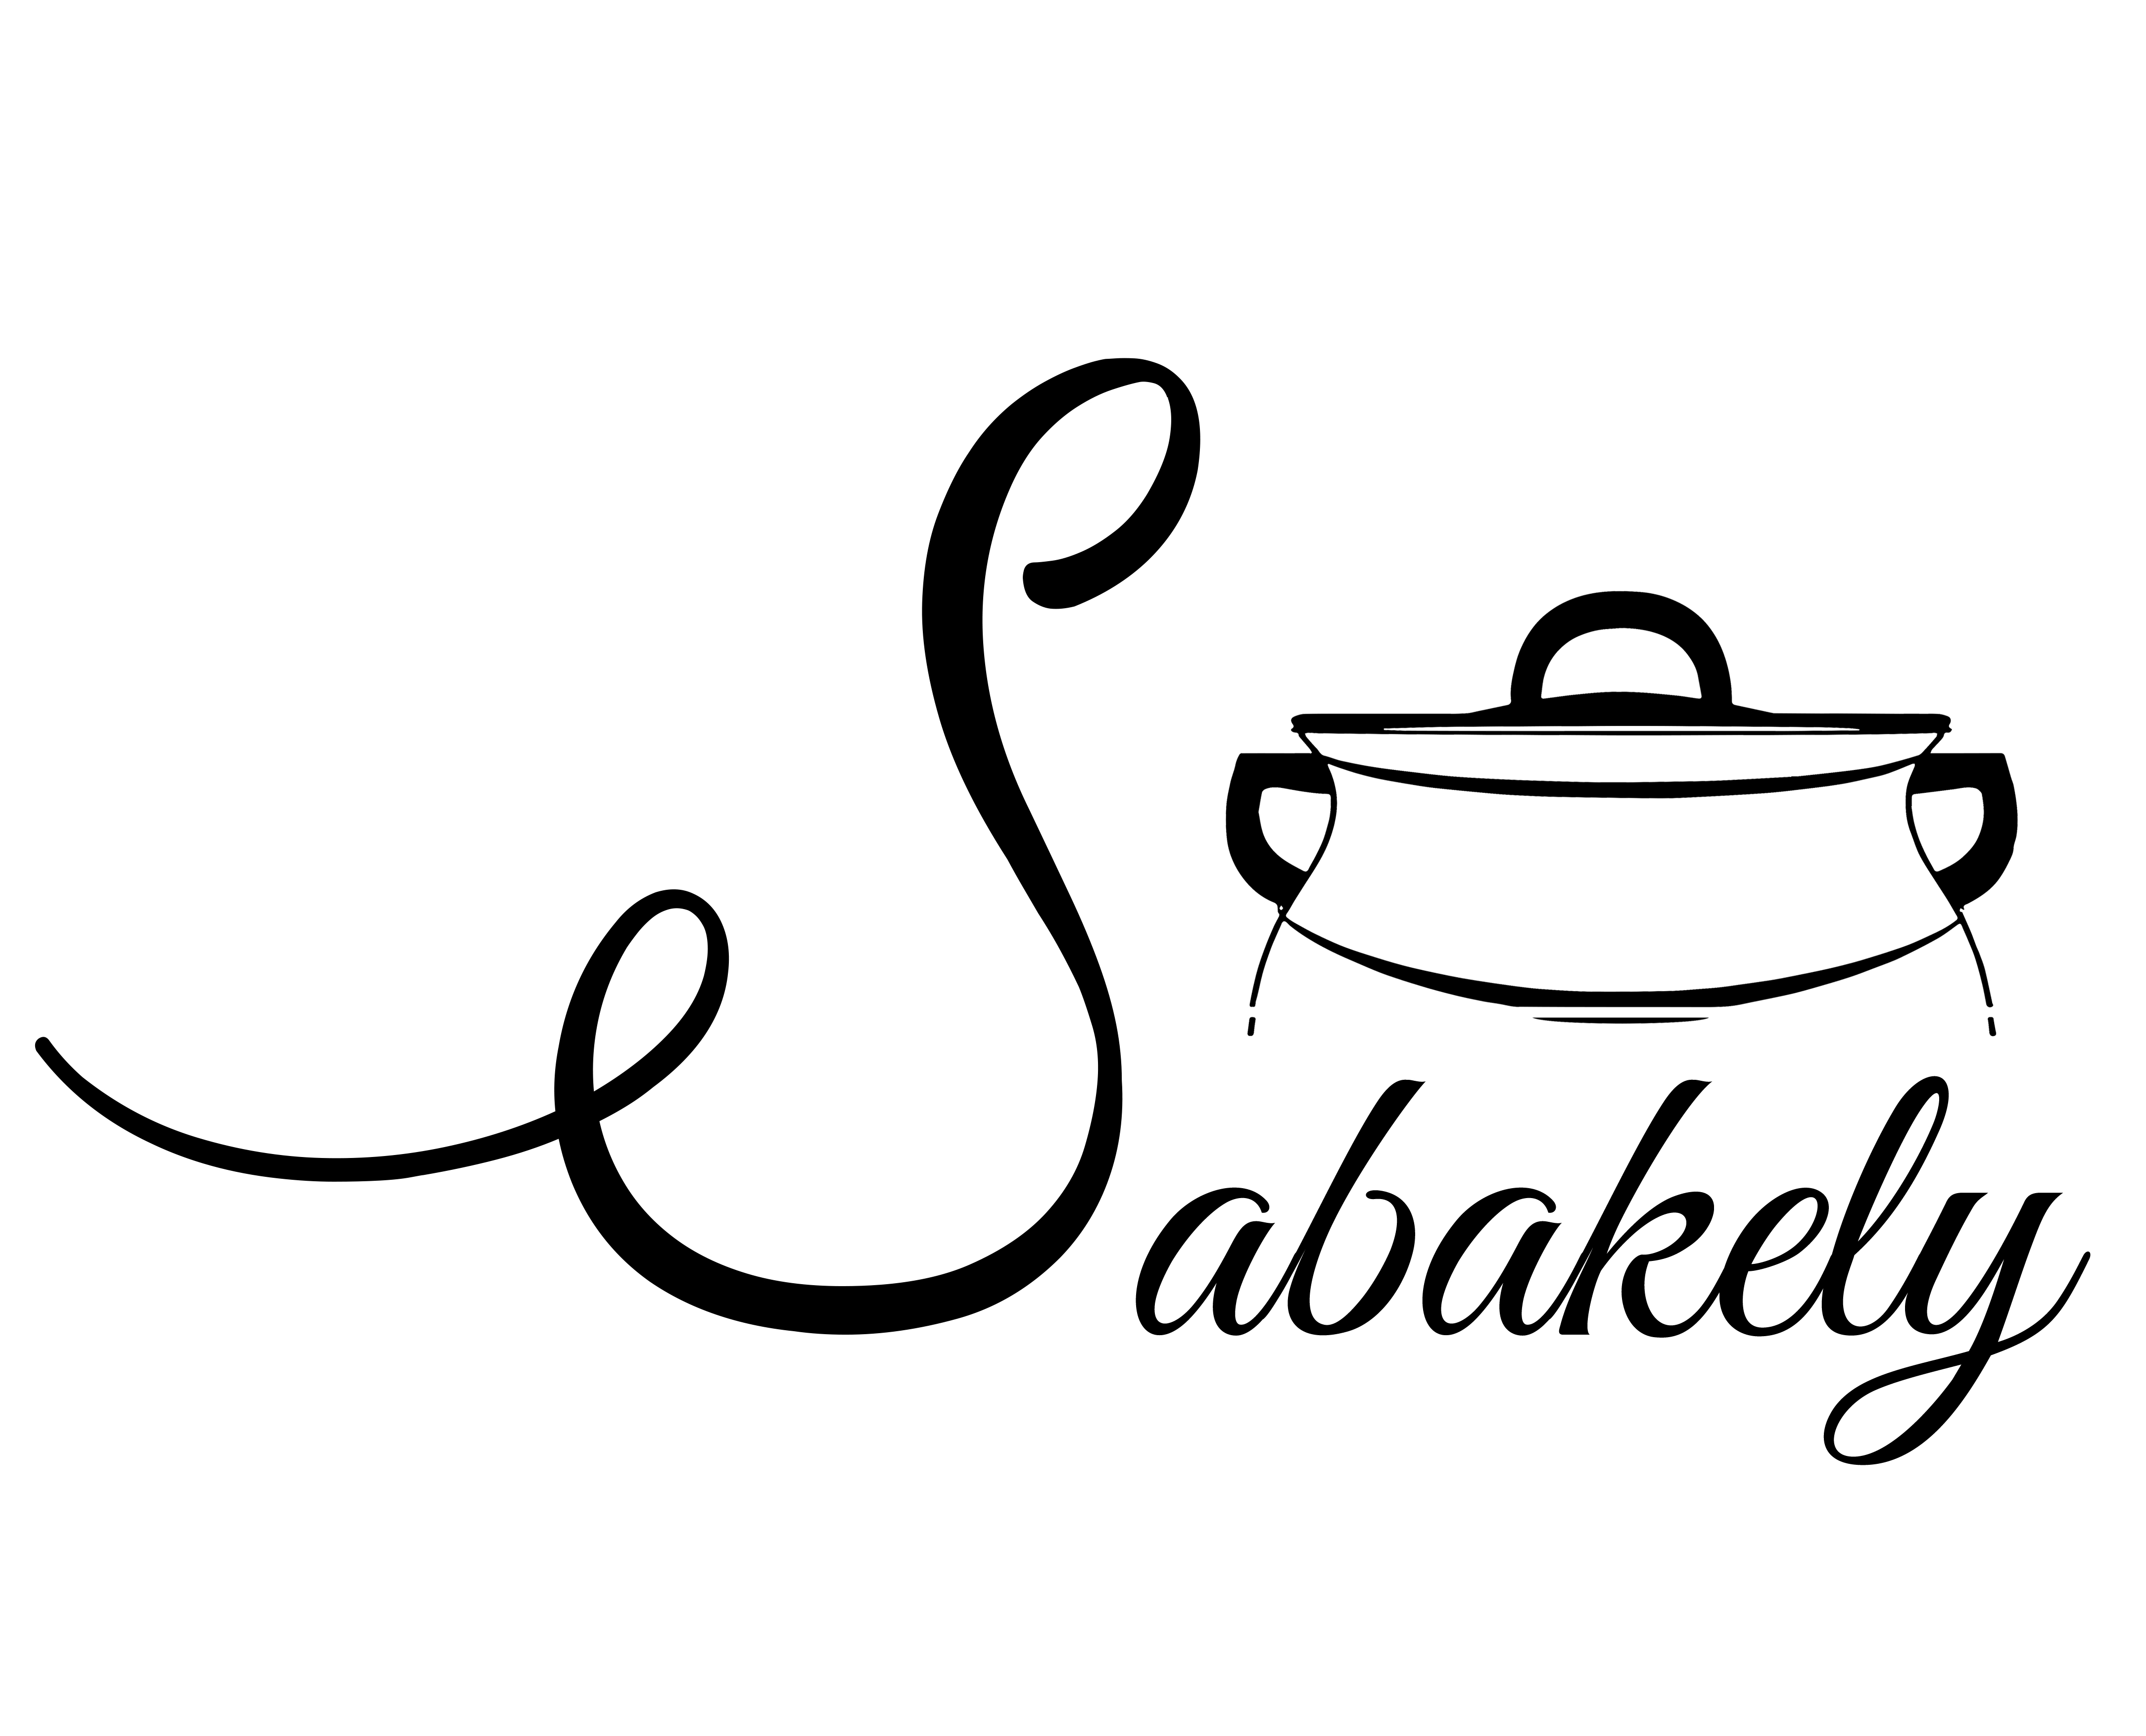 Sabakely